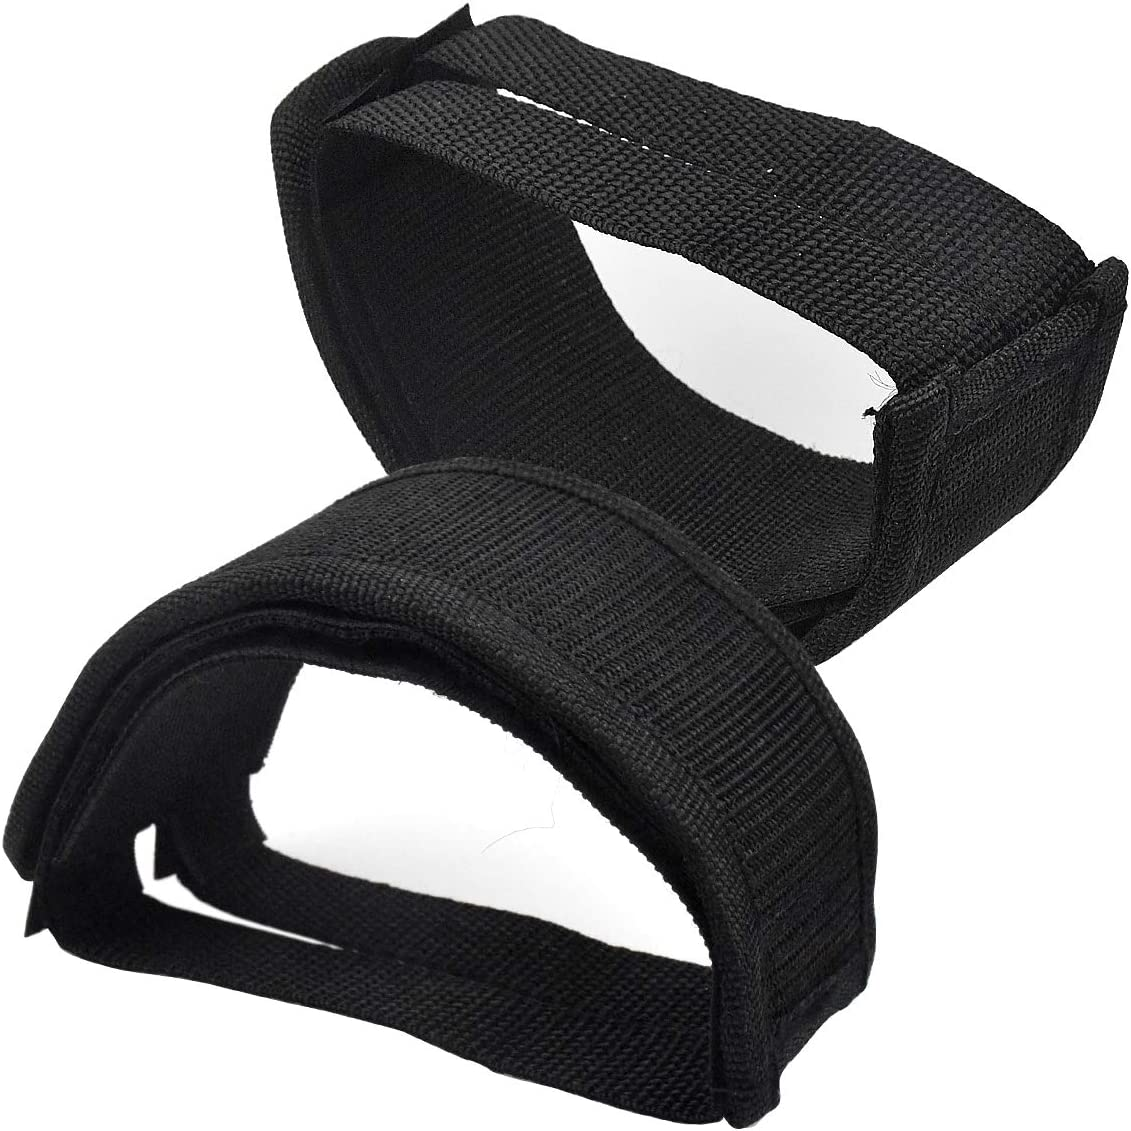 HQdeal 1 Pair Universal Bicycle Fixed Strap Anti-Slip Double Adhesive Pedal Toe Clip Strap Cycling Pedal Accessory